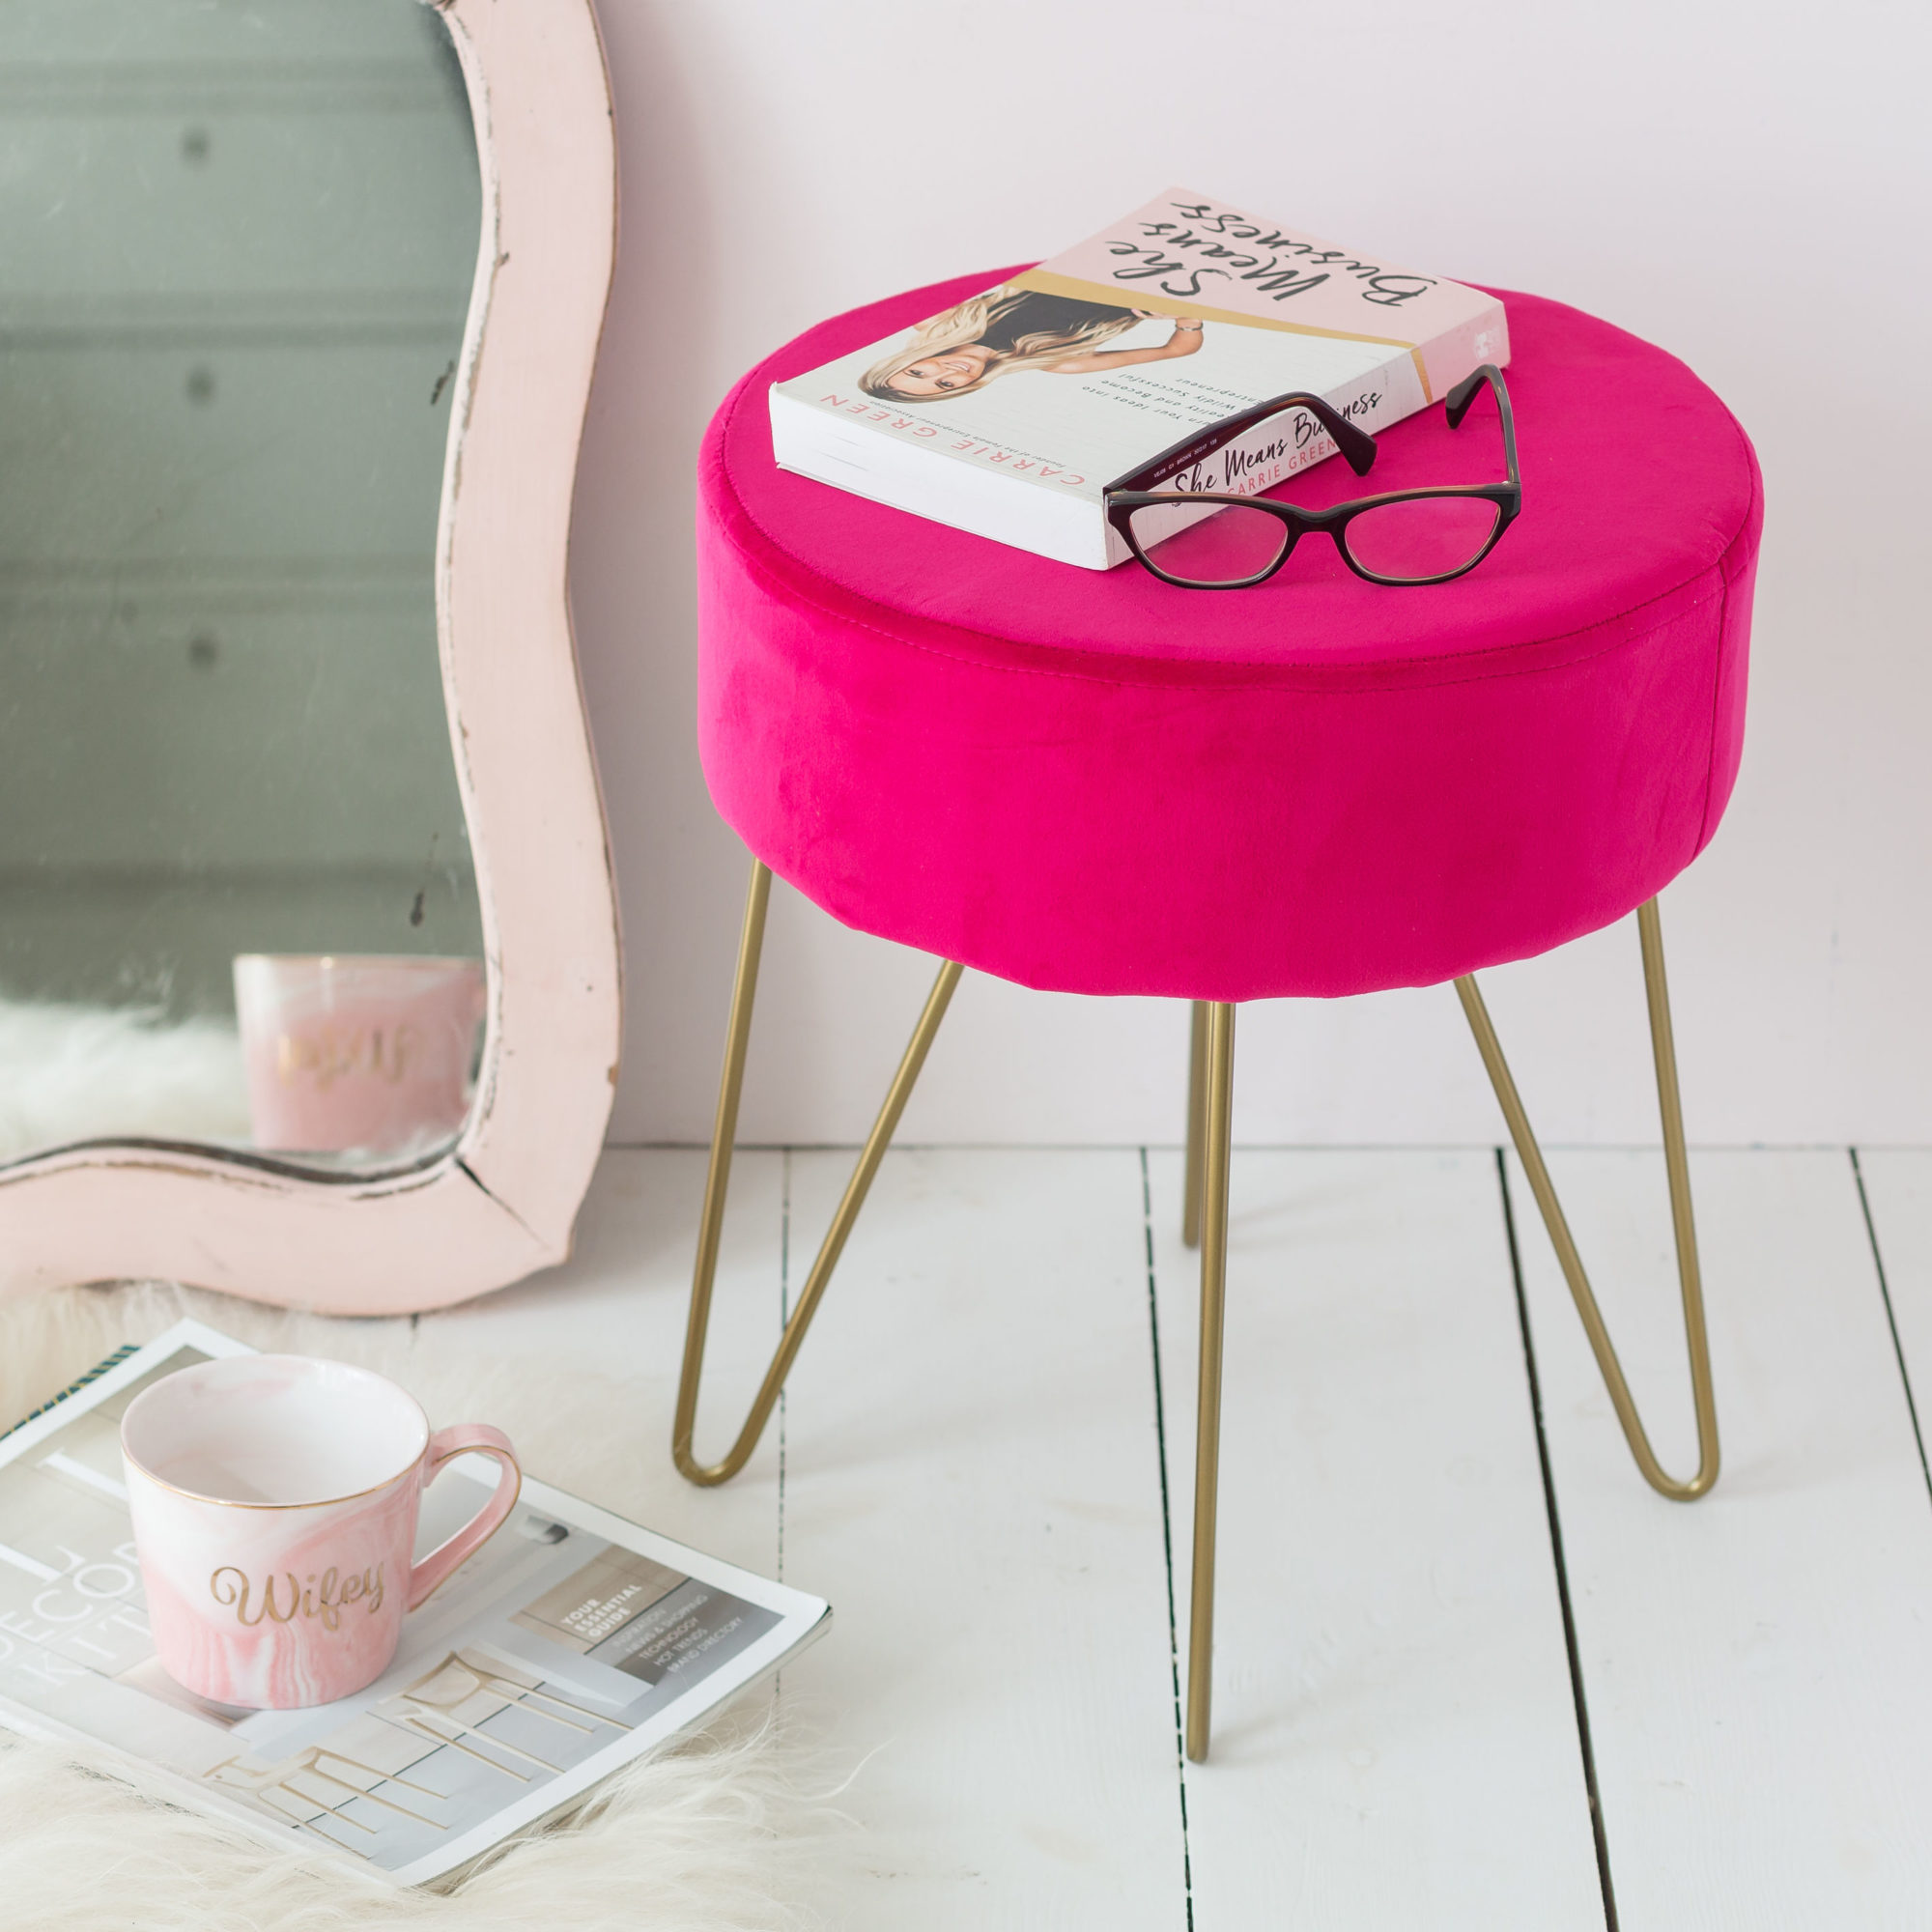 Hot Pink Stool With Gold Legs